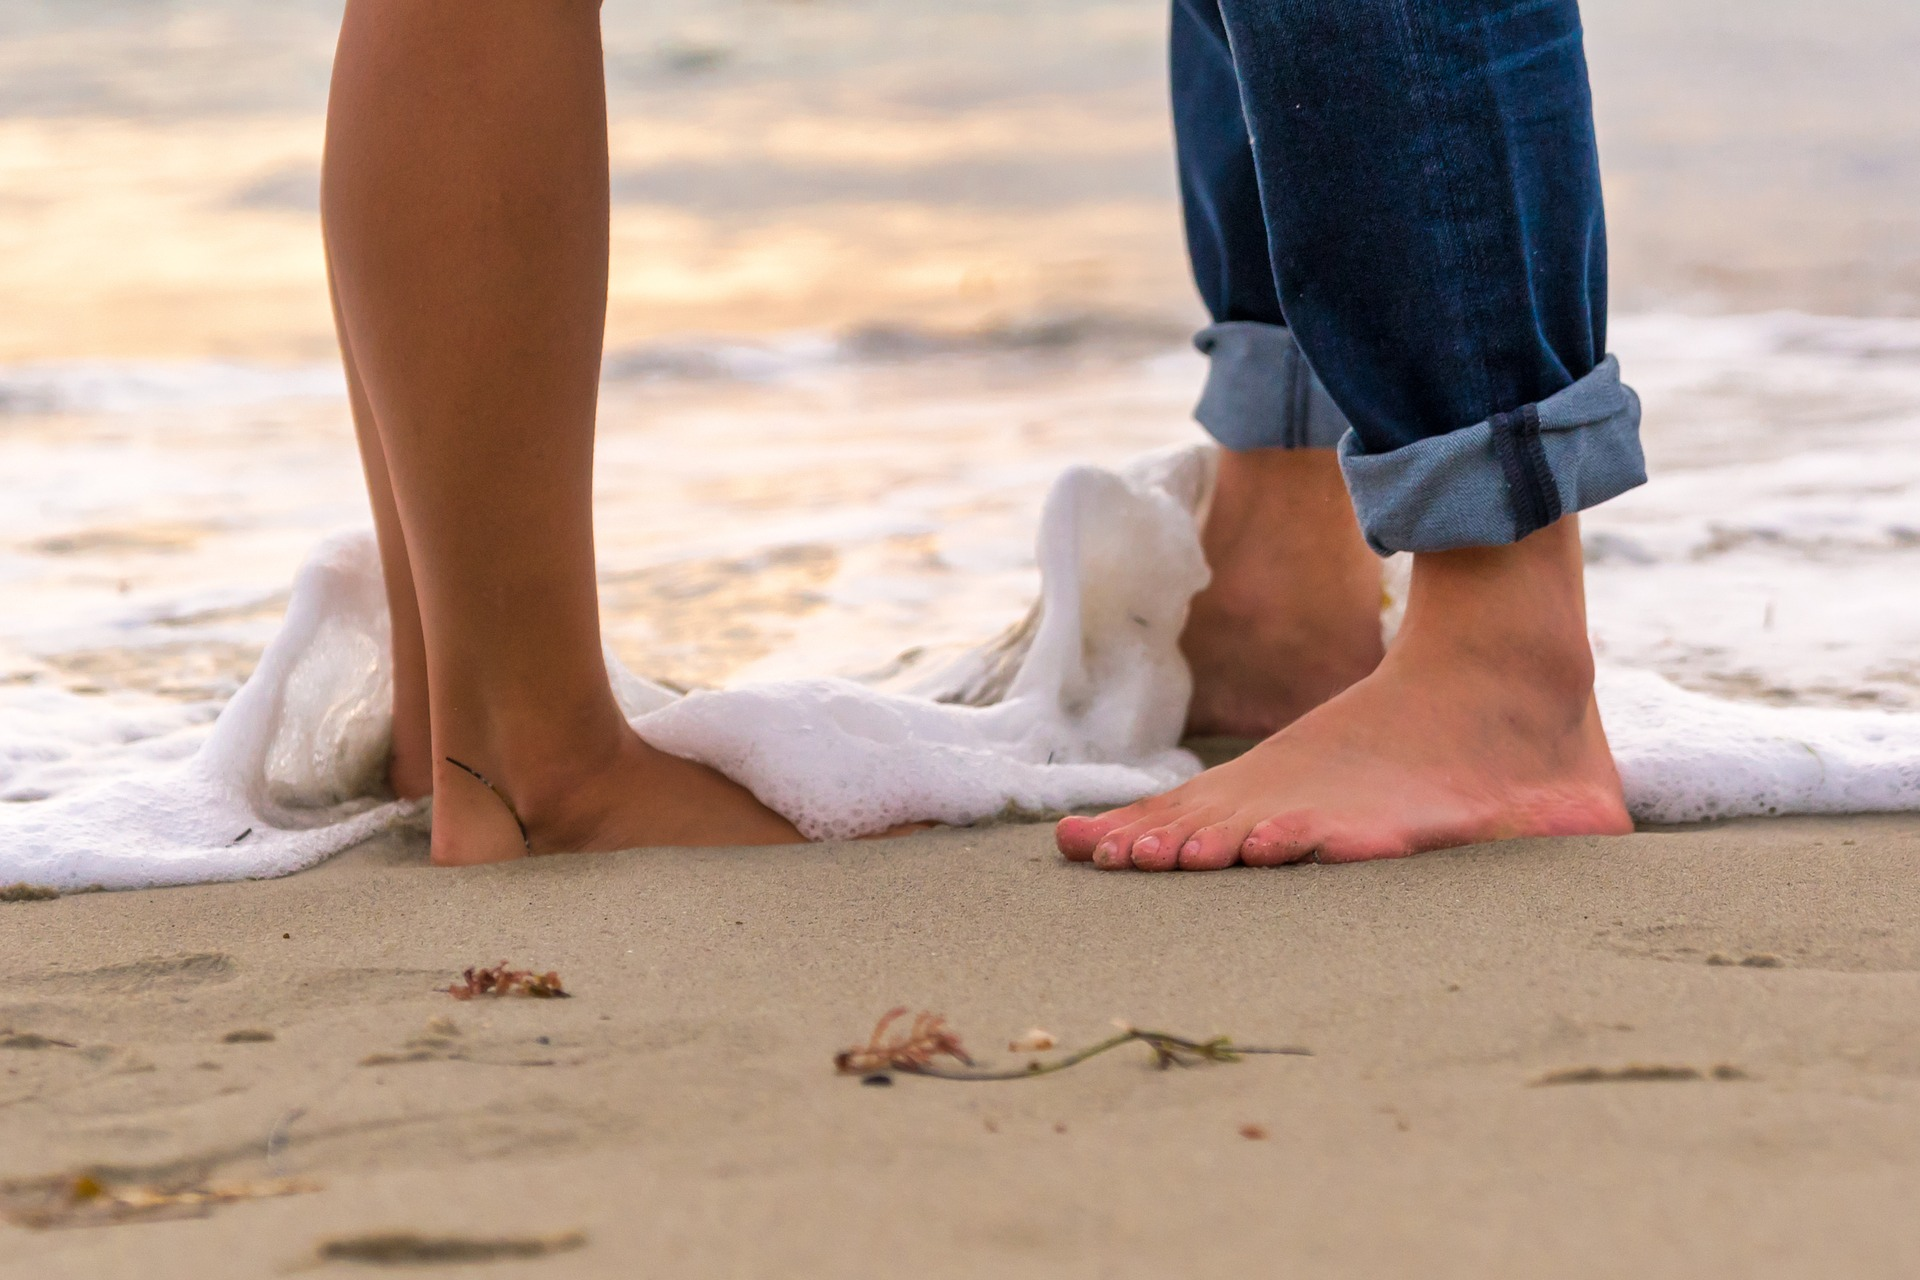 Couples having sex on the beach picture 77